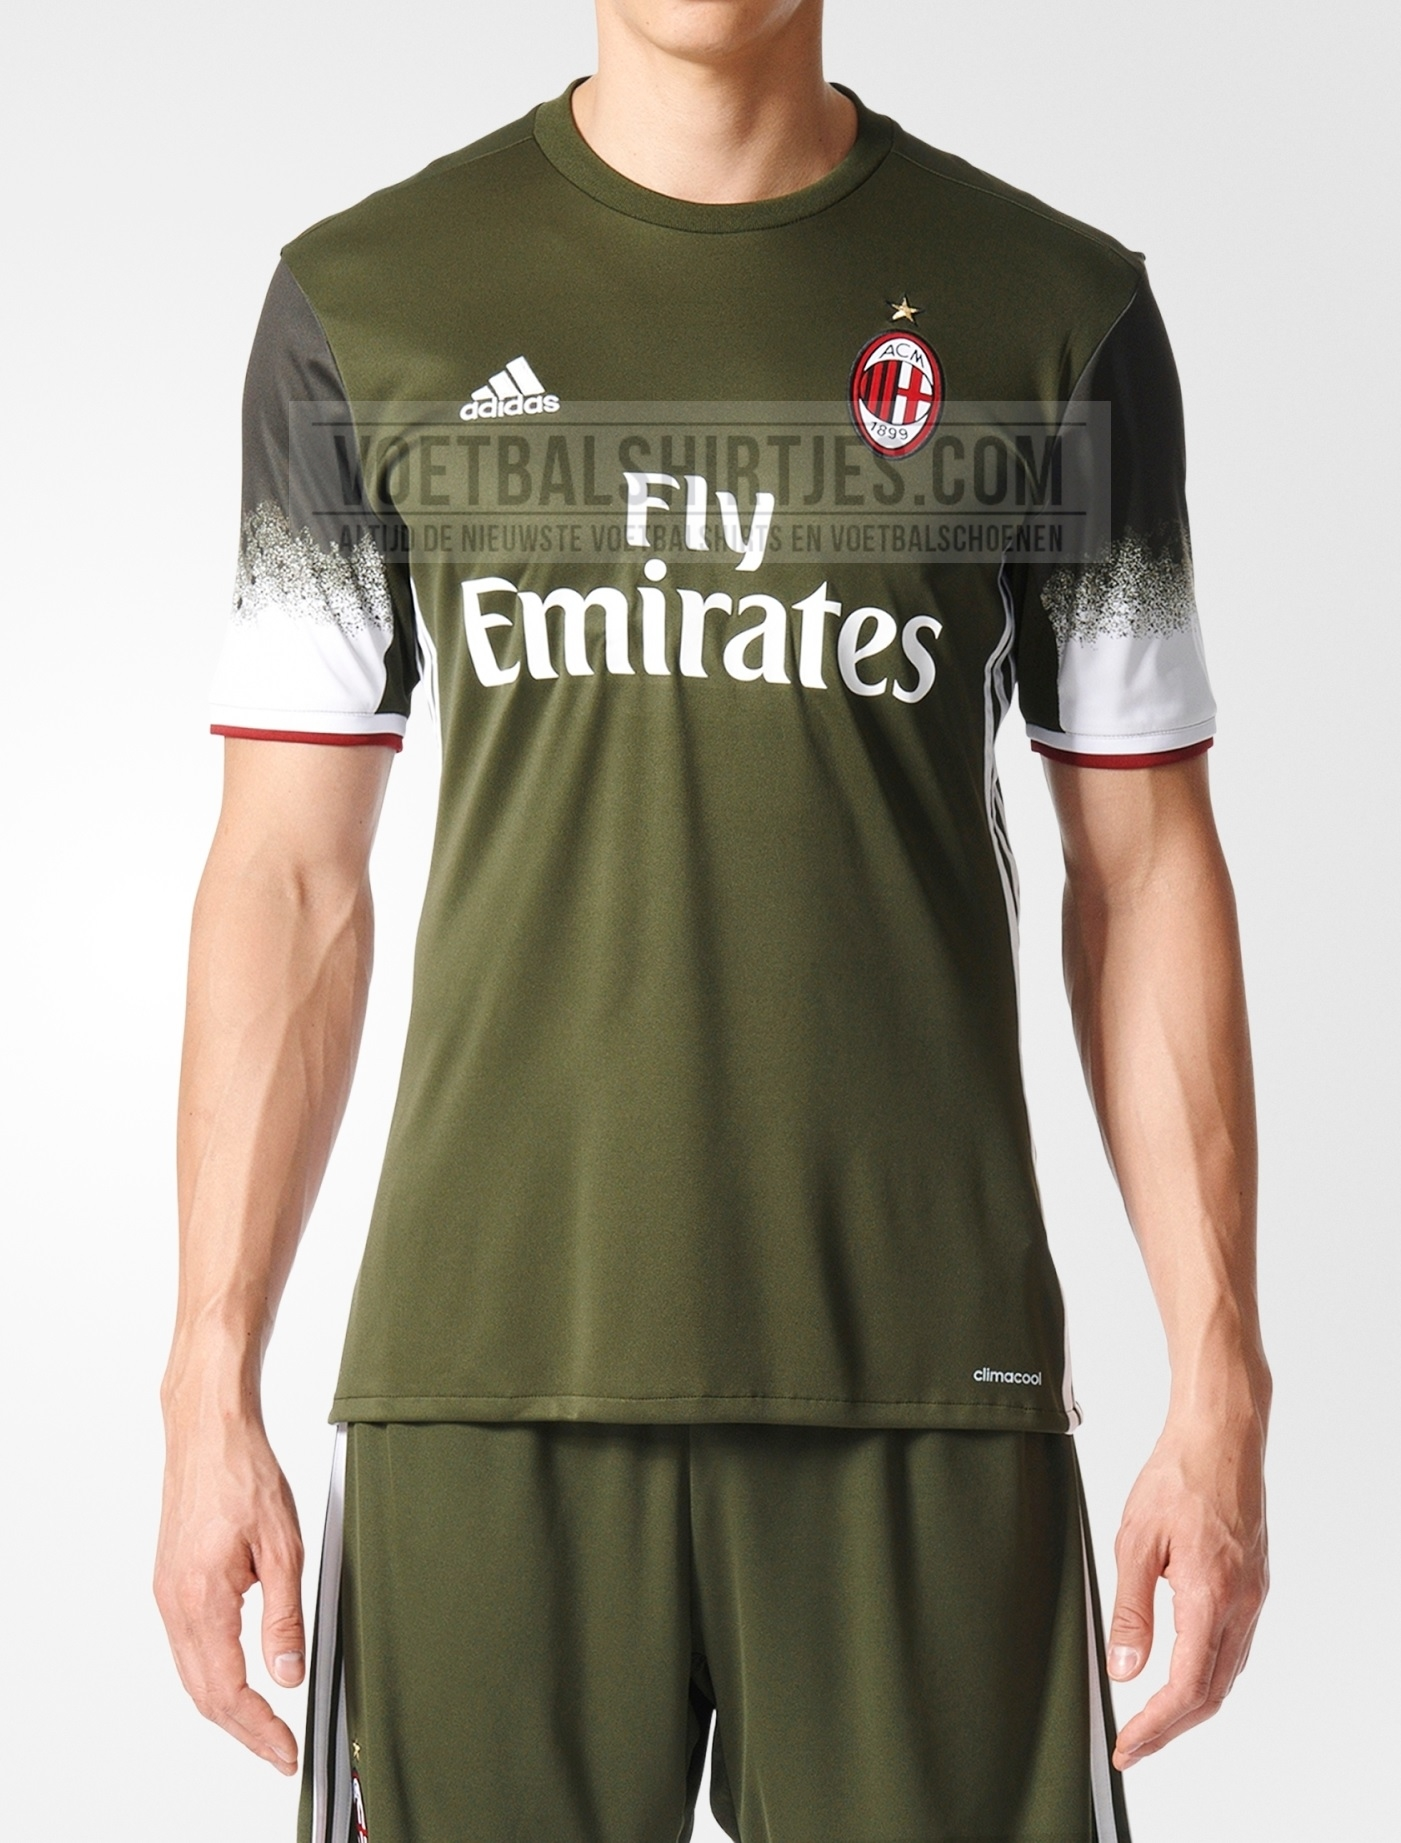 ac milan third kit 2017